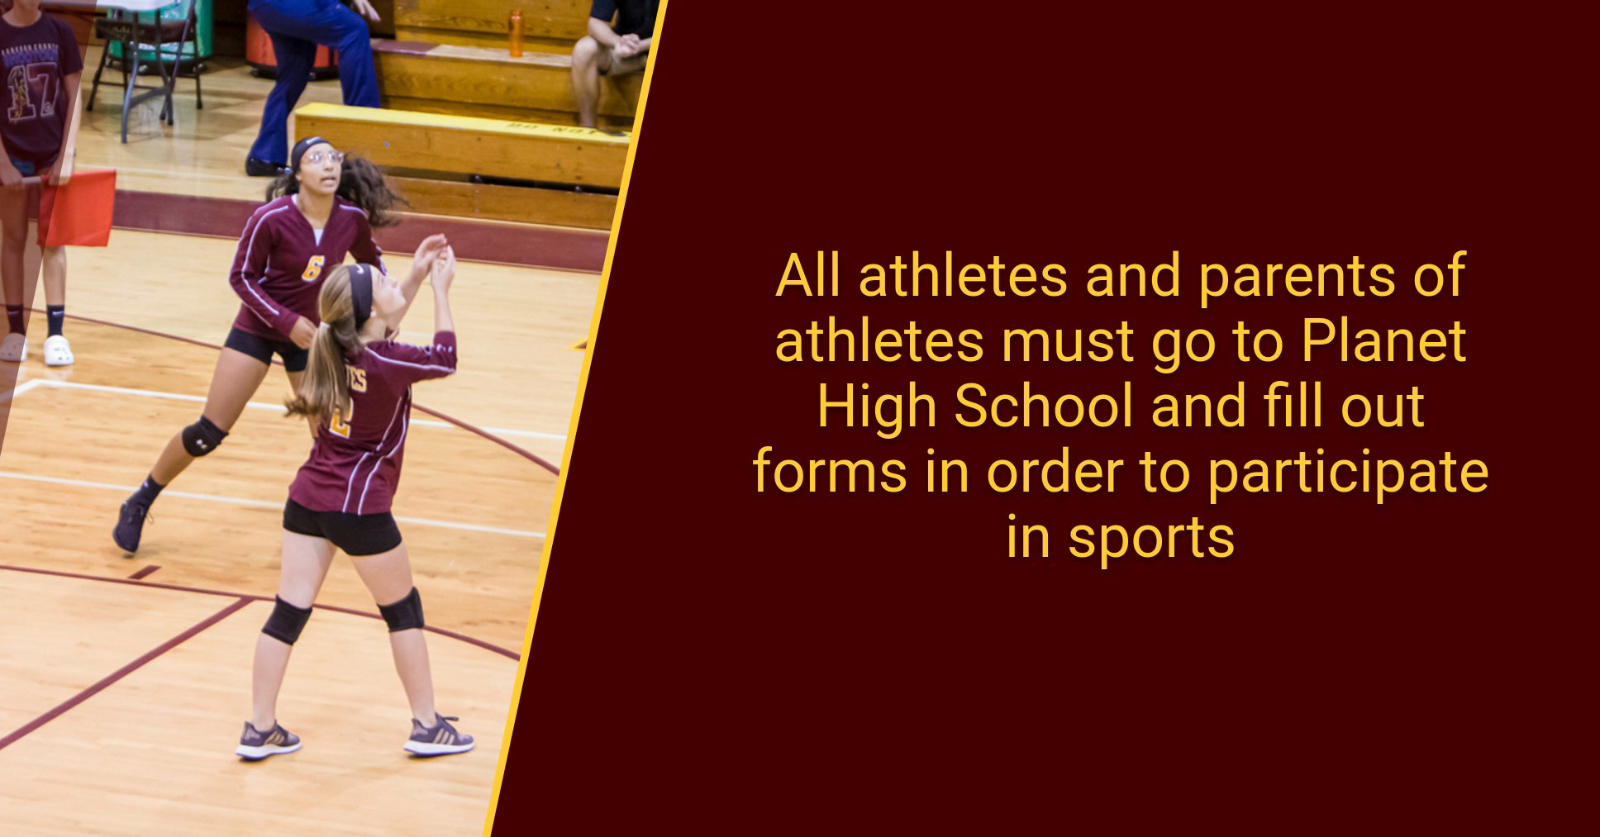 ATTENTION ATHLETES! YOU MUST TAKE ACTION NOW IN ORDER TO TRYOUT AND WORKOUT